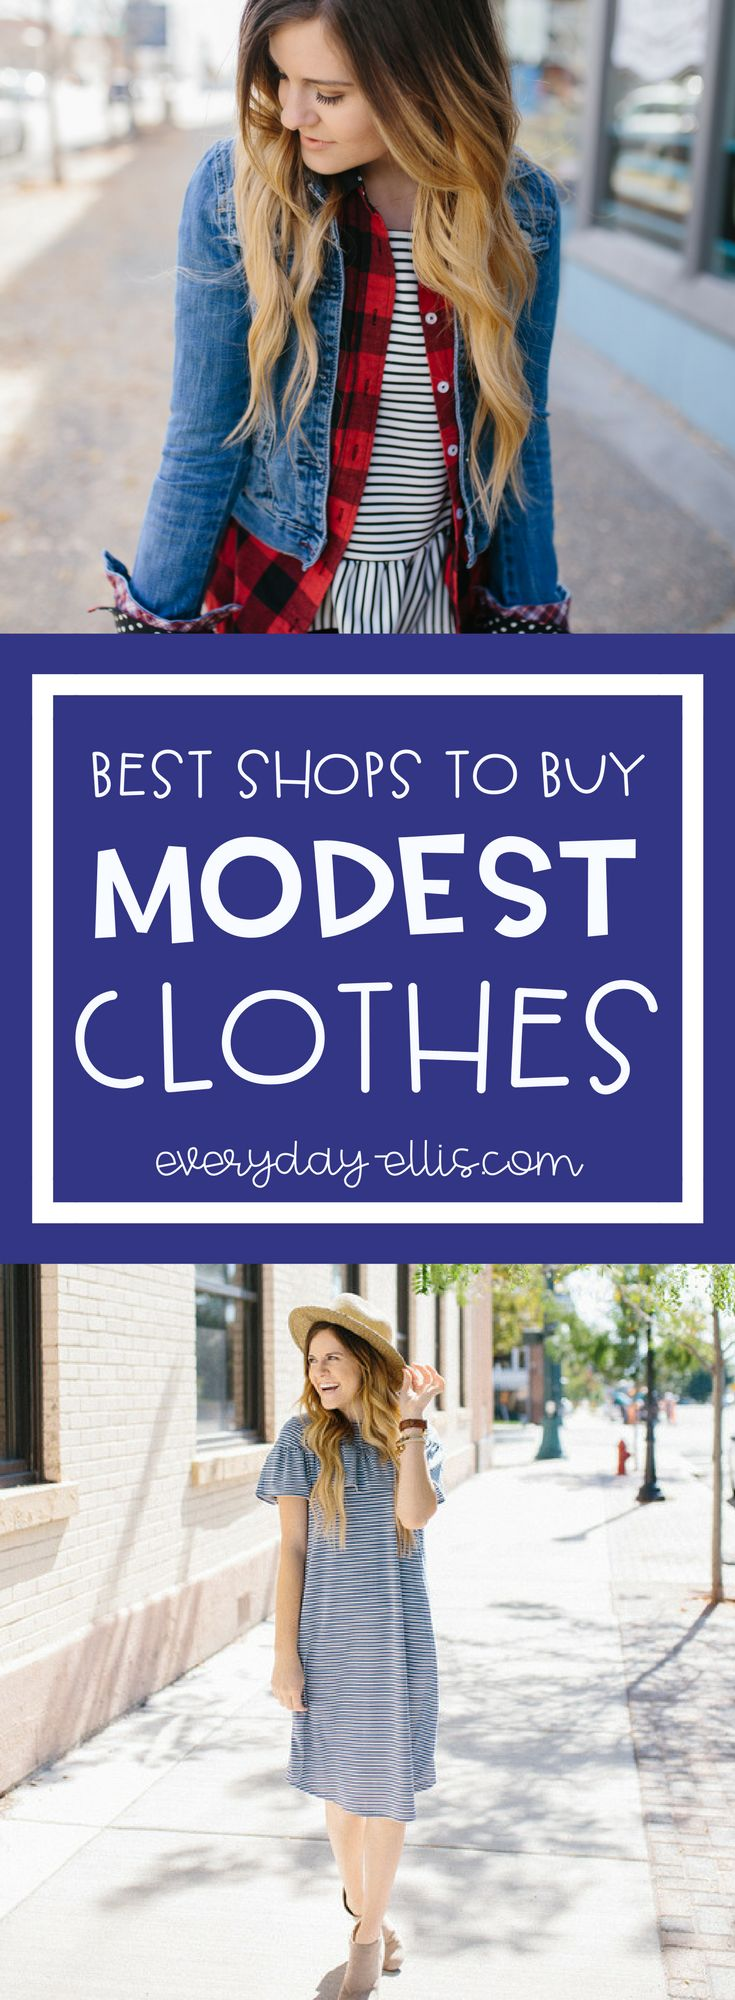 Best Places To Buy Modest Clothes, modest clothes, modest outfit, modest shops, where to buy modest clothes, modesty, lds blogger, lds outfit, modest clothes women, modest clothes for teens, modest clothes pants, modest clothes summer, modest clothes lds, modest clothes casual, modest clothes modern, modest clothes jeans, modest clothes ideas, modest clothes cheap, modest clothes dress, modest clothes cute, modest clothes website, modest clothes outfits, modest clothes stores, modest blogger